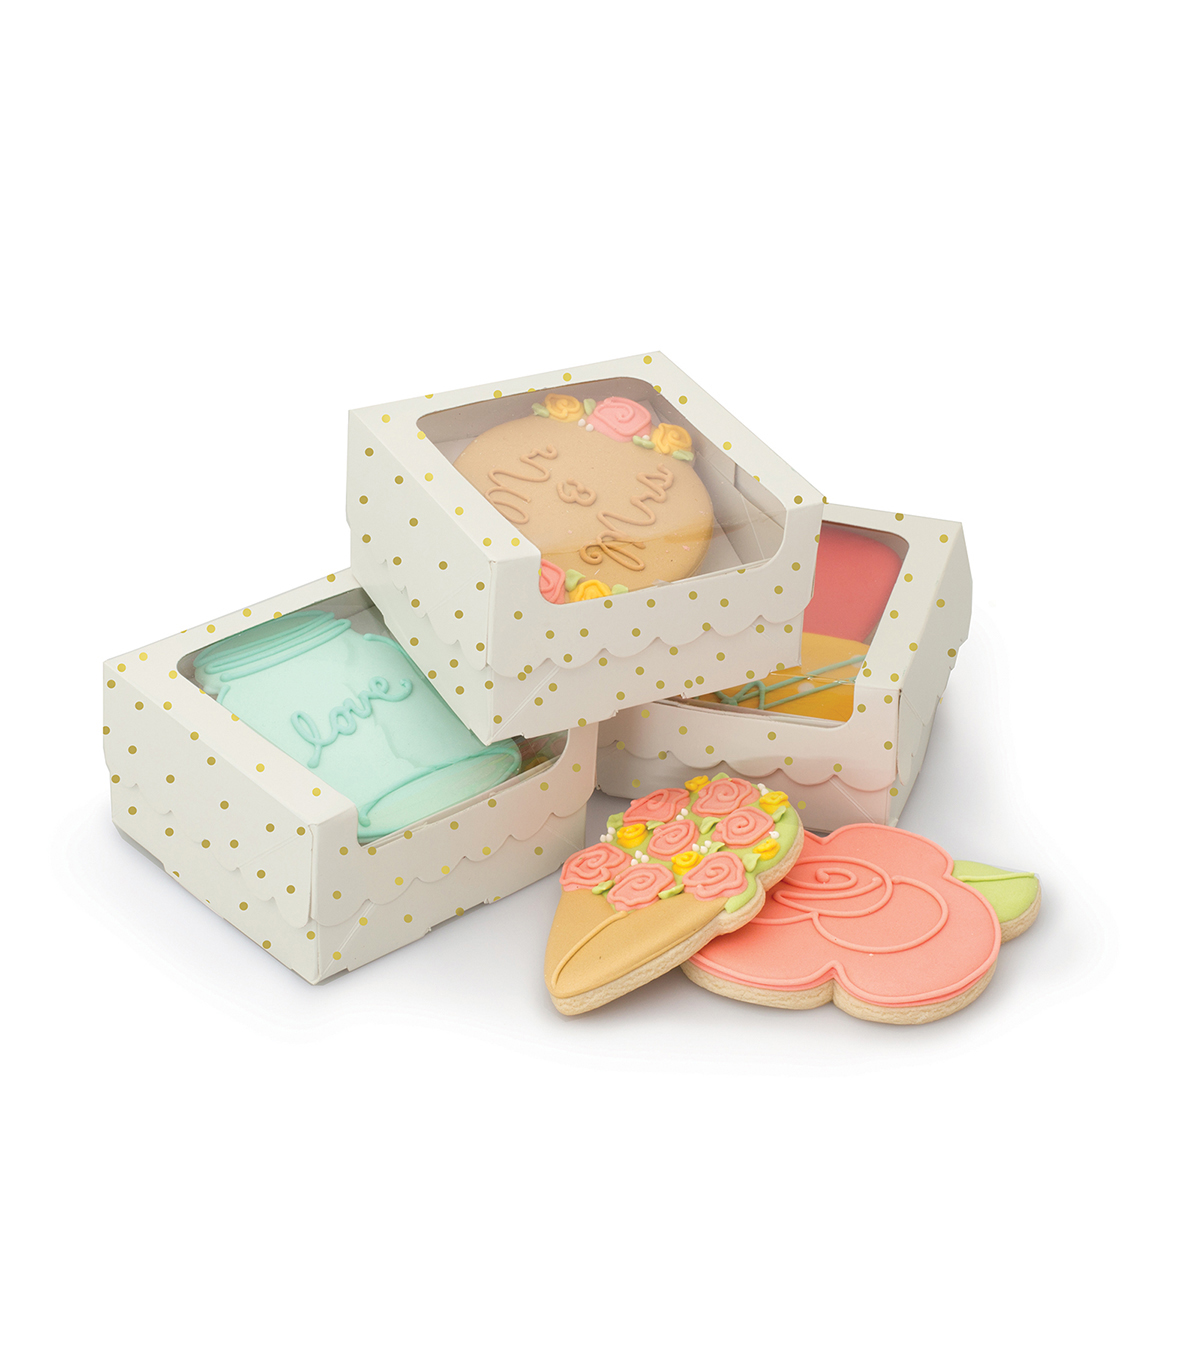 Sweet Sugarbelle 1 Cookie Box White and Gold Dot